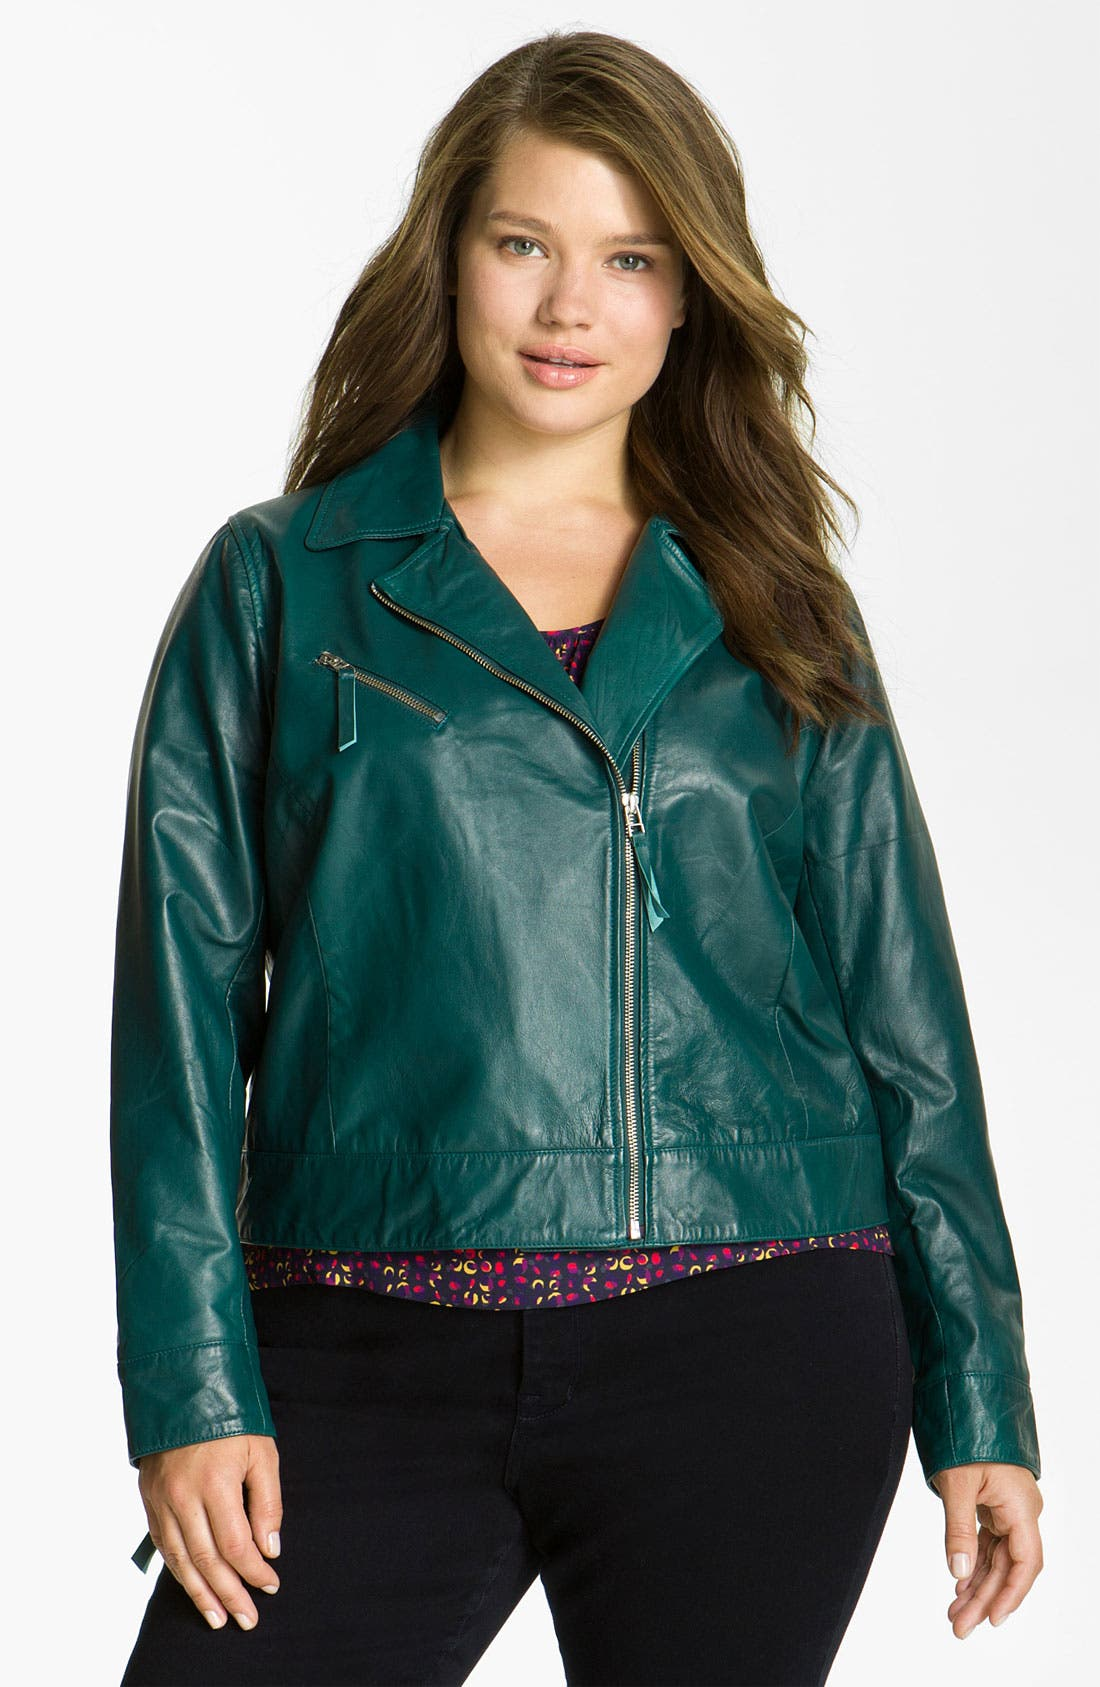 Alternate Image 1 Selected - John Carlisle Leather Moto Jacket (Plus)